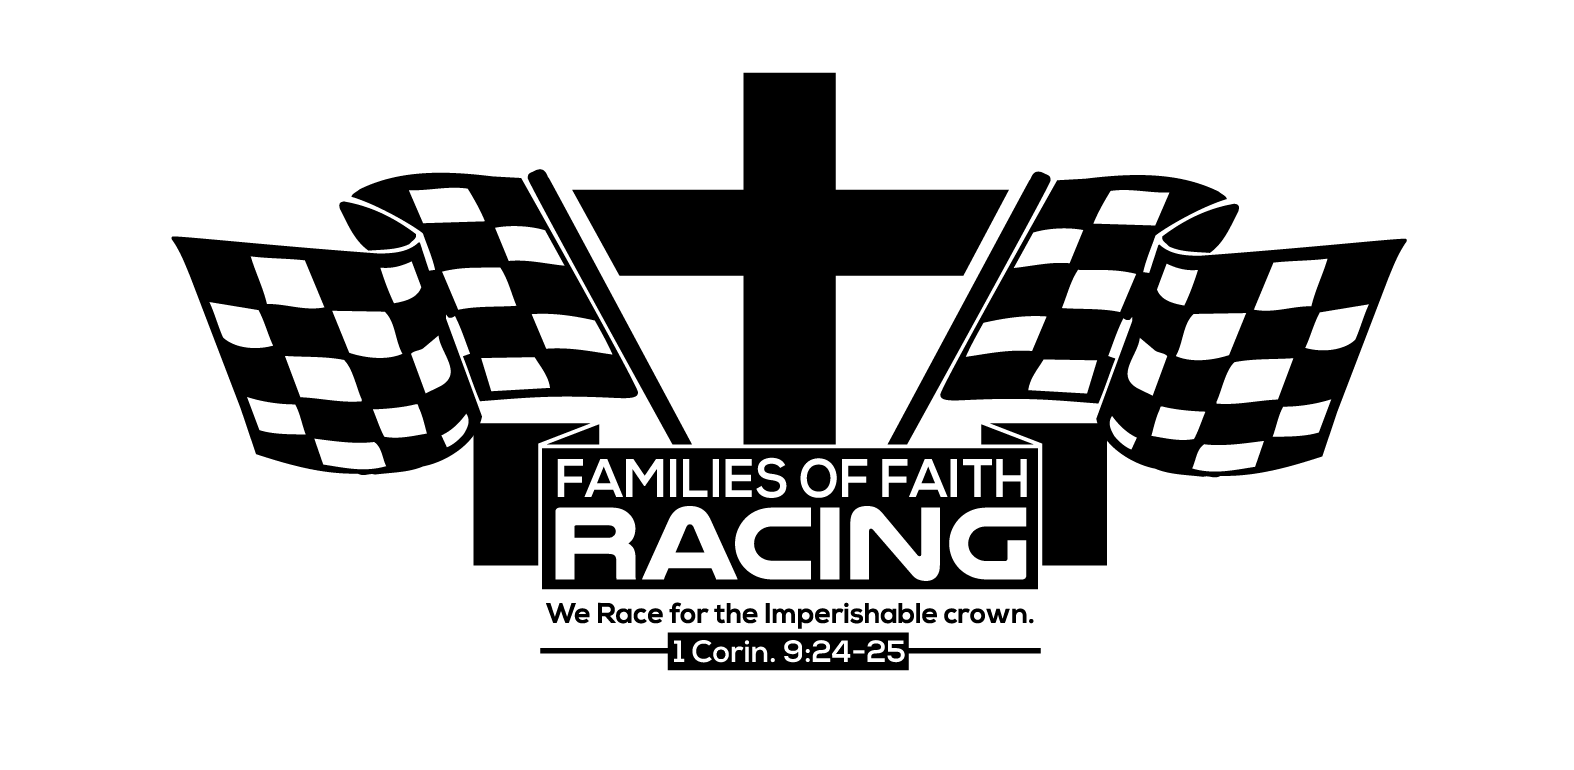 Family Of Faith Racing Decal white backg